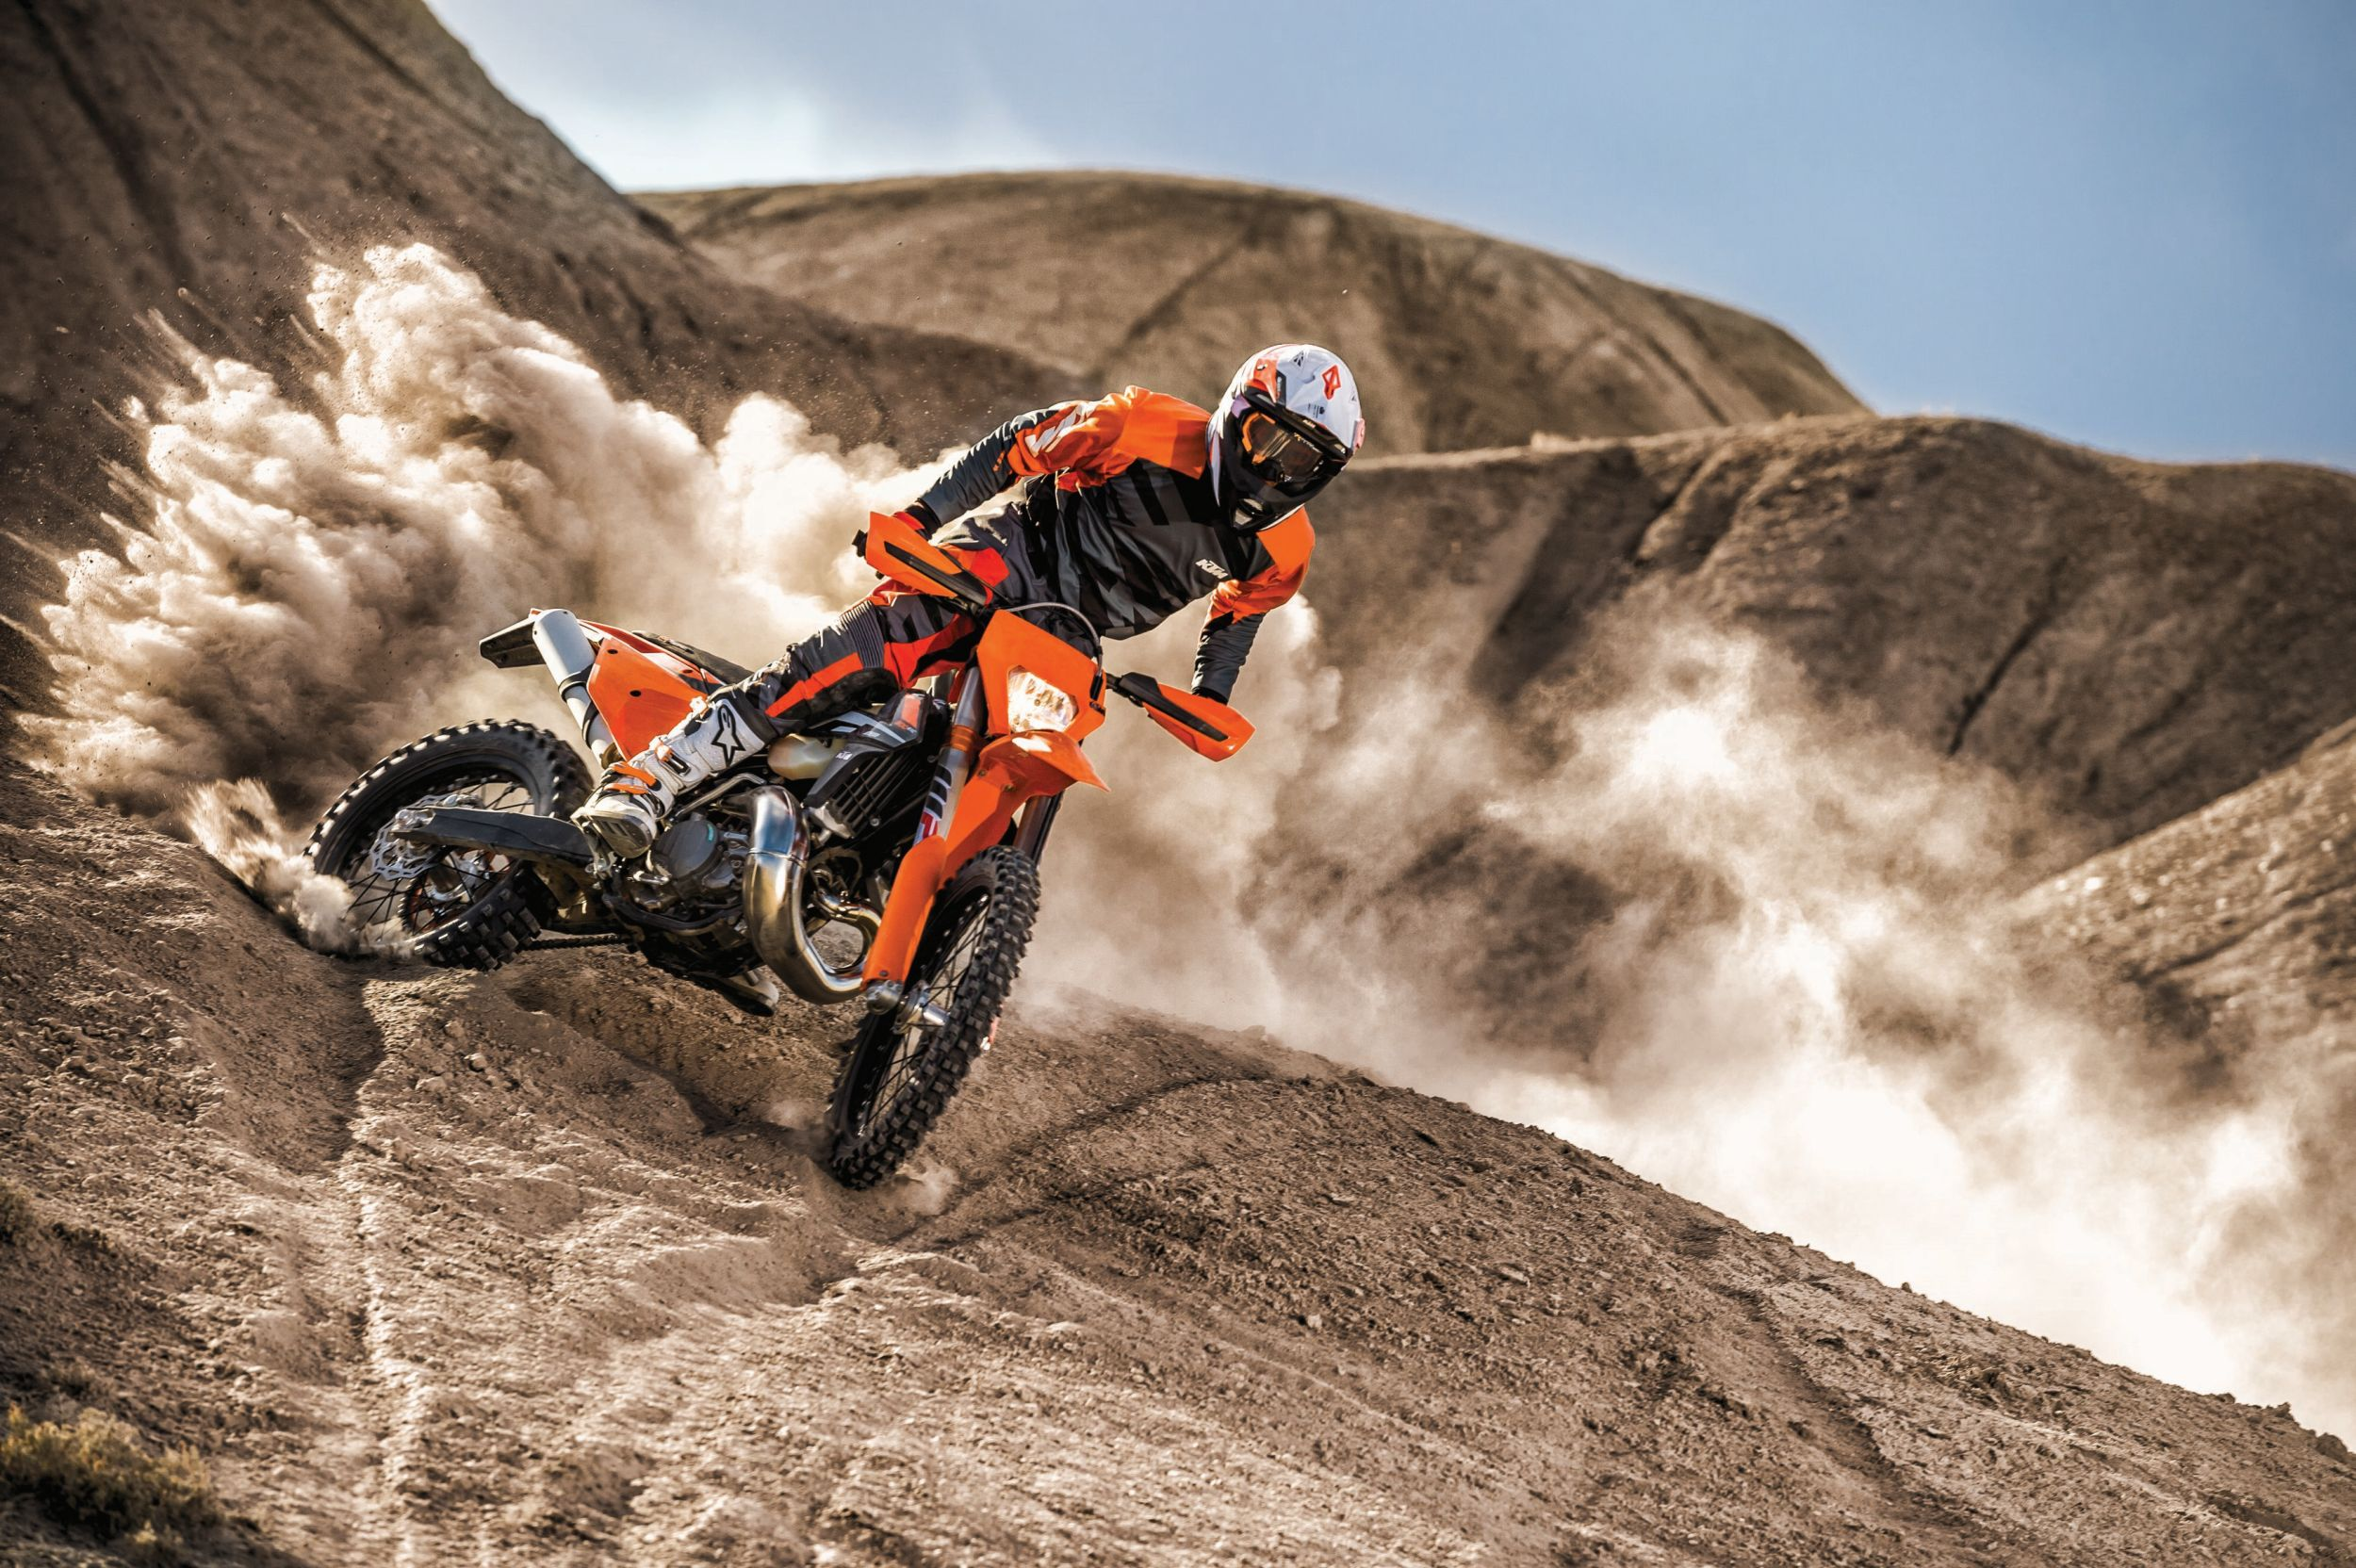 Ktm Super Adventure S Price